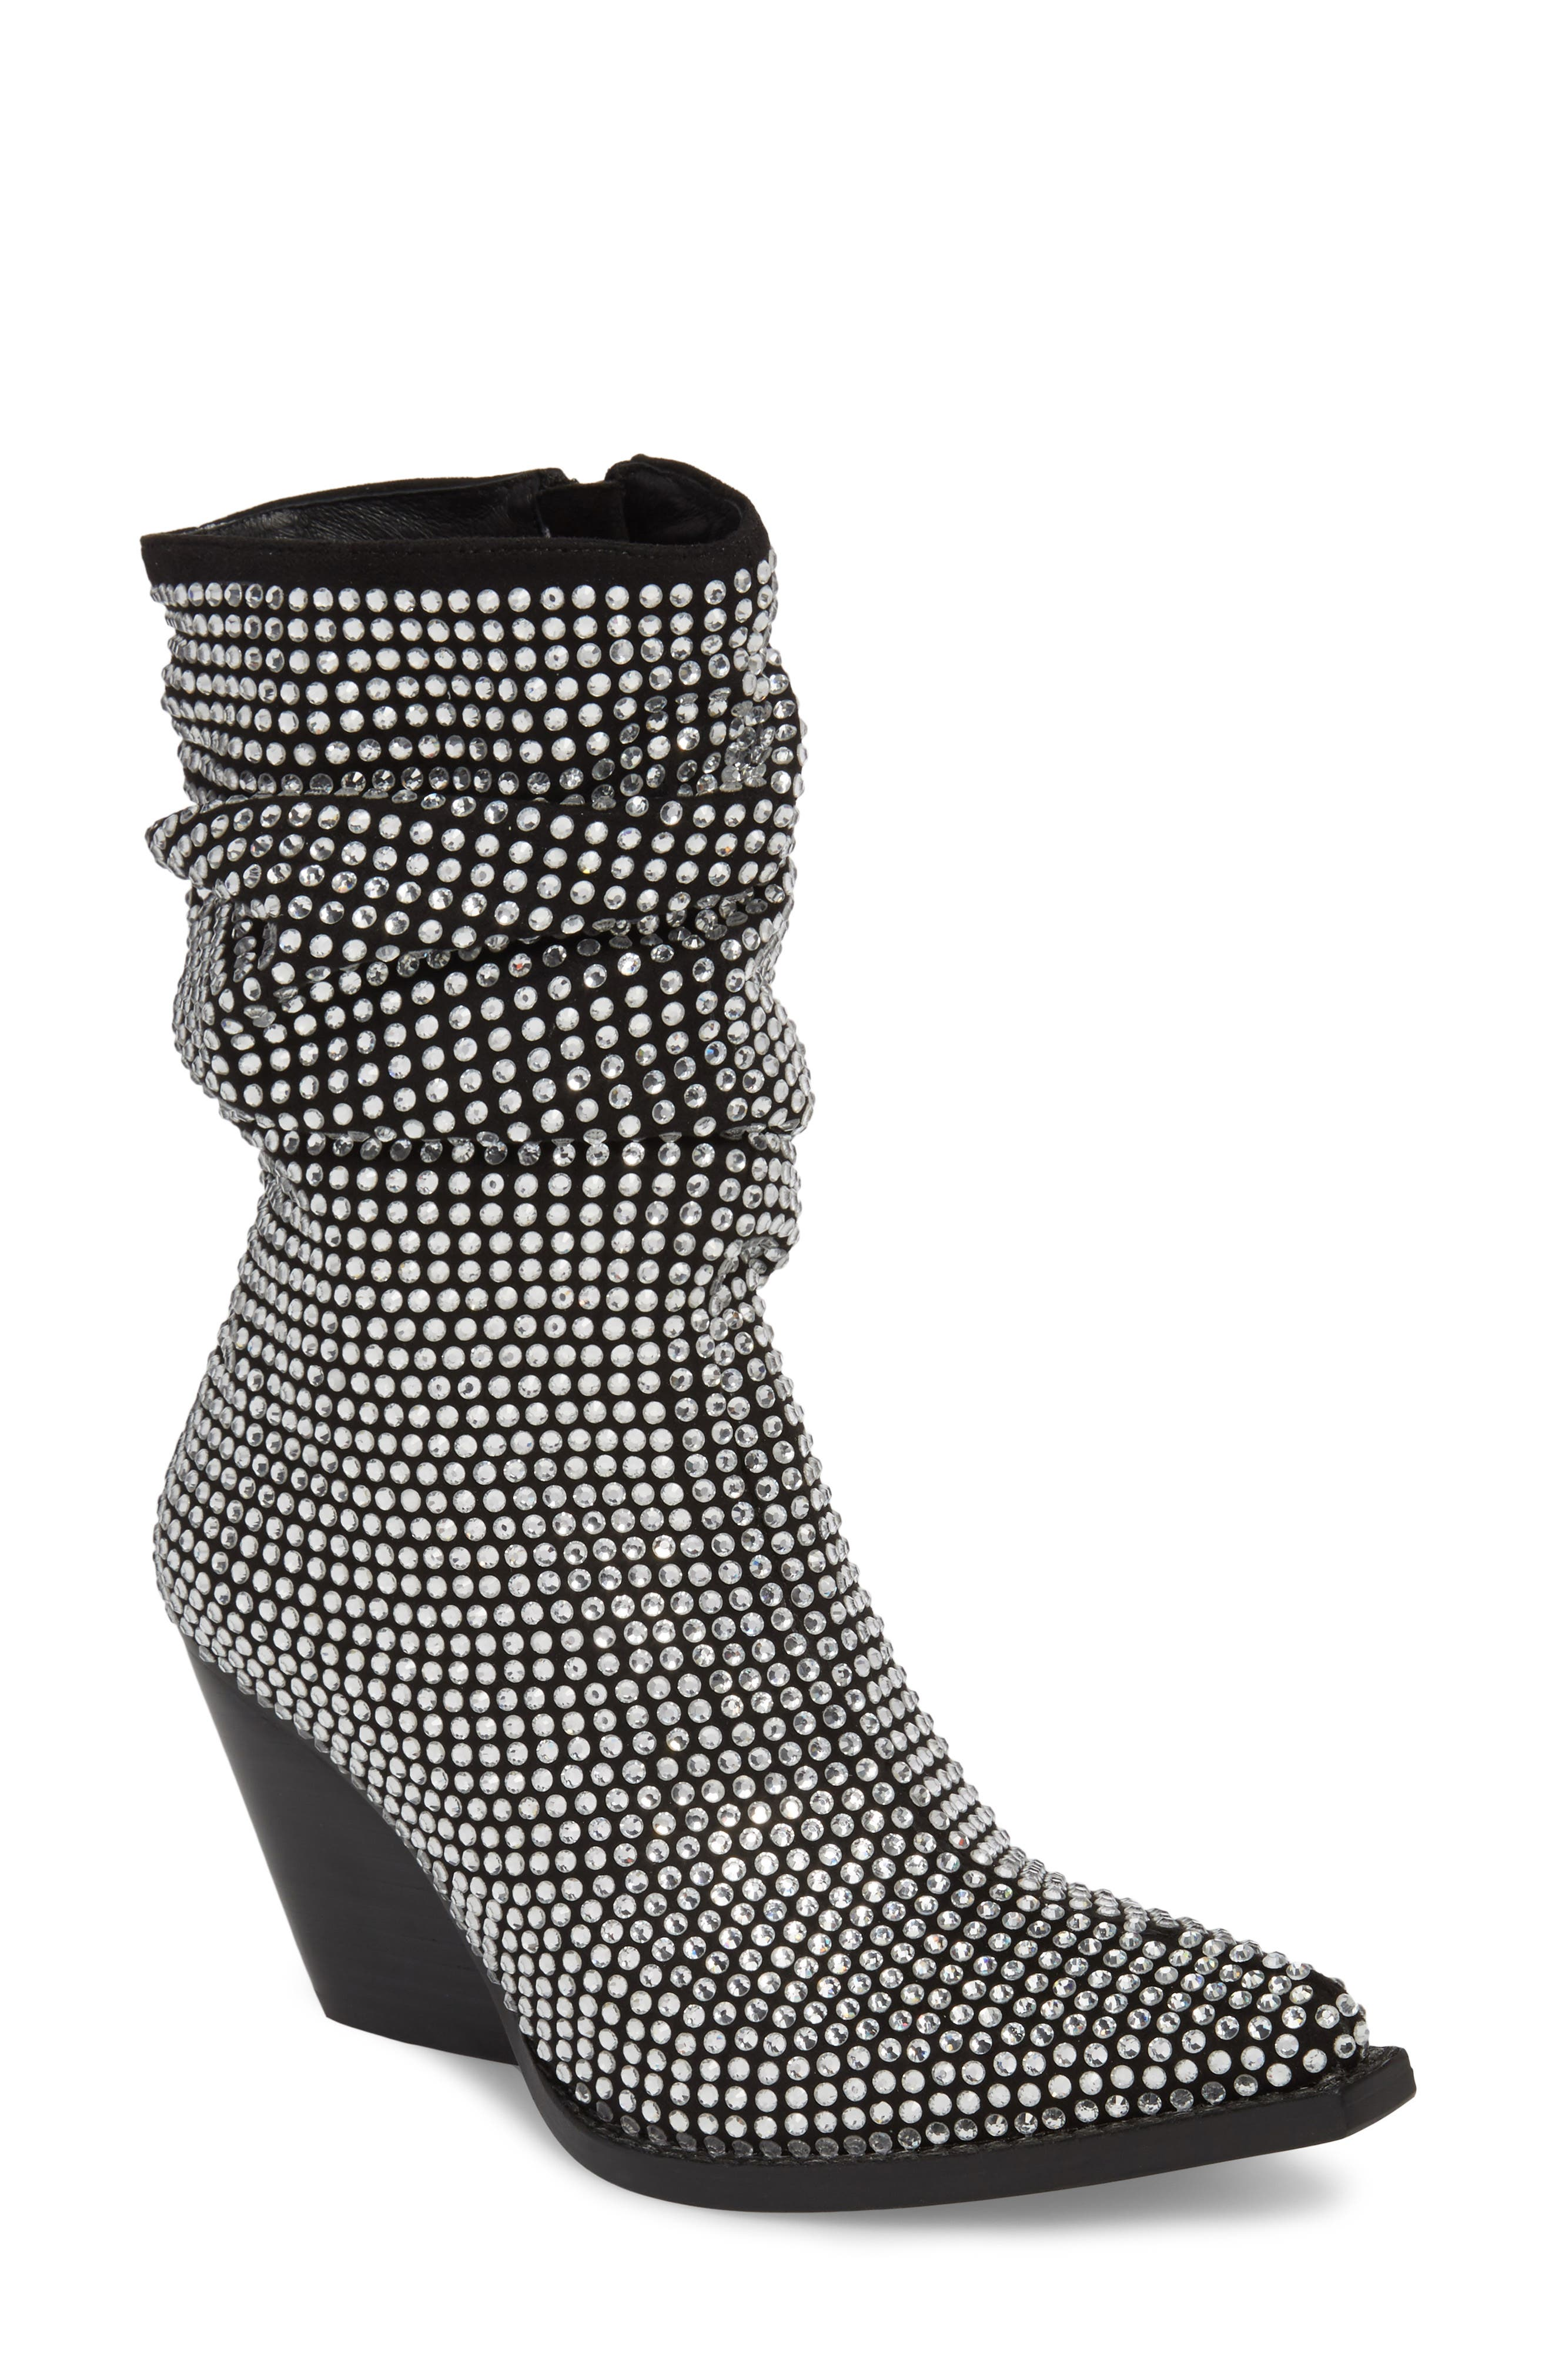 Controll Crystal Studded Slouch Boot,                             Main thumbnail 1, color,                             BLACK SUEDE SILVER